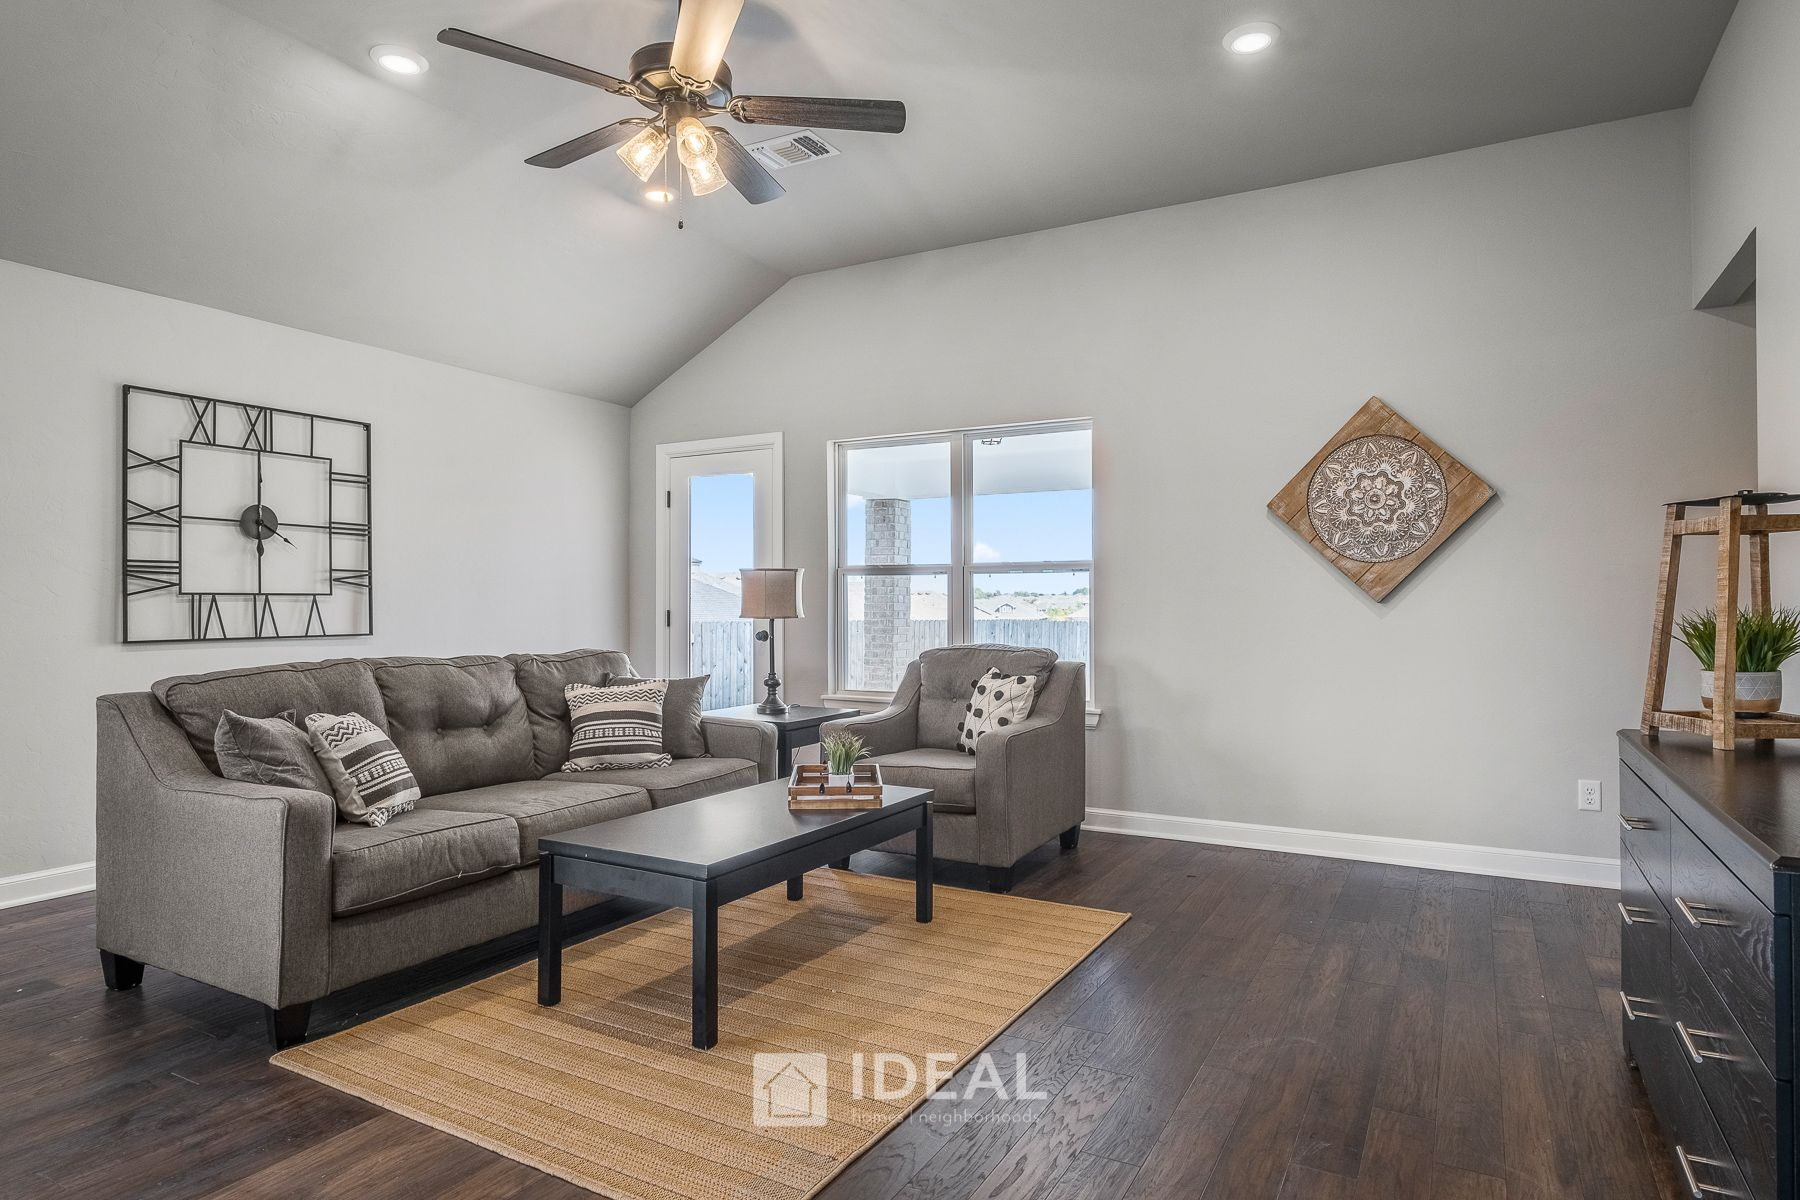 Living Area featured in the Holloway By Ideal Homes in Oklahoma City, OK